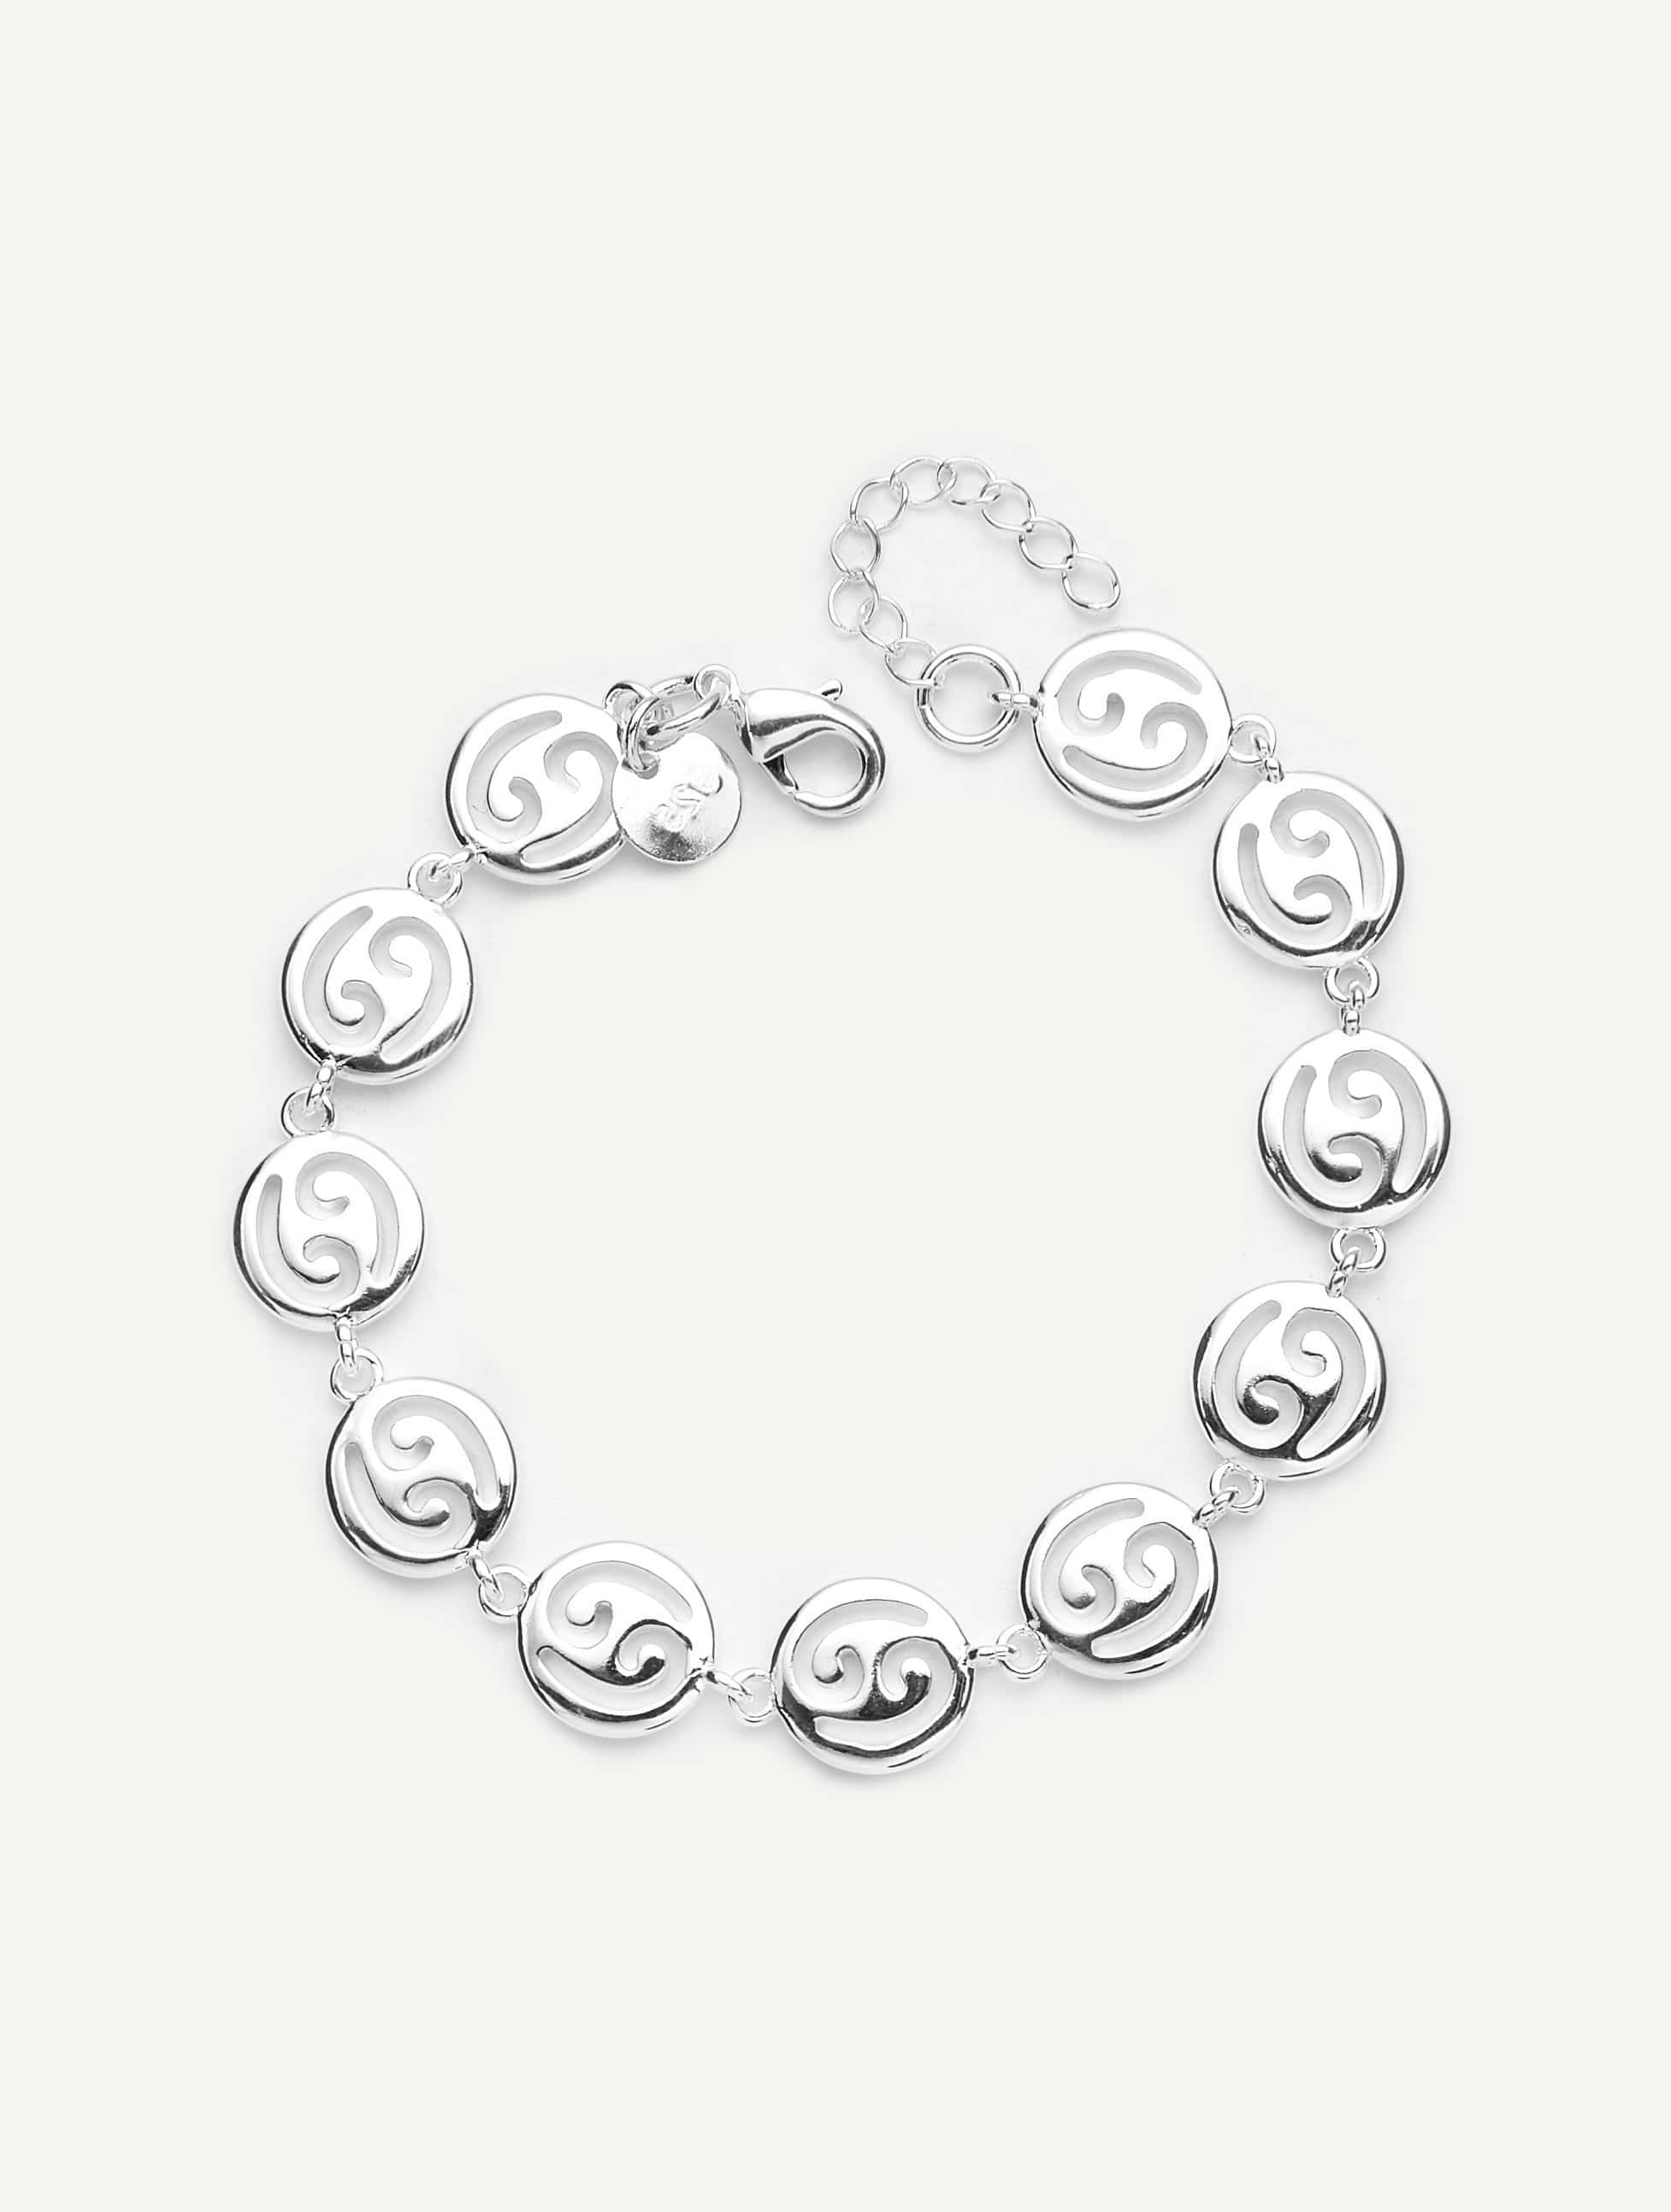 Hollow Round Design Link Bracelet honeywell metrologic ms7625 usb horizon page 8